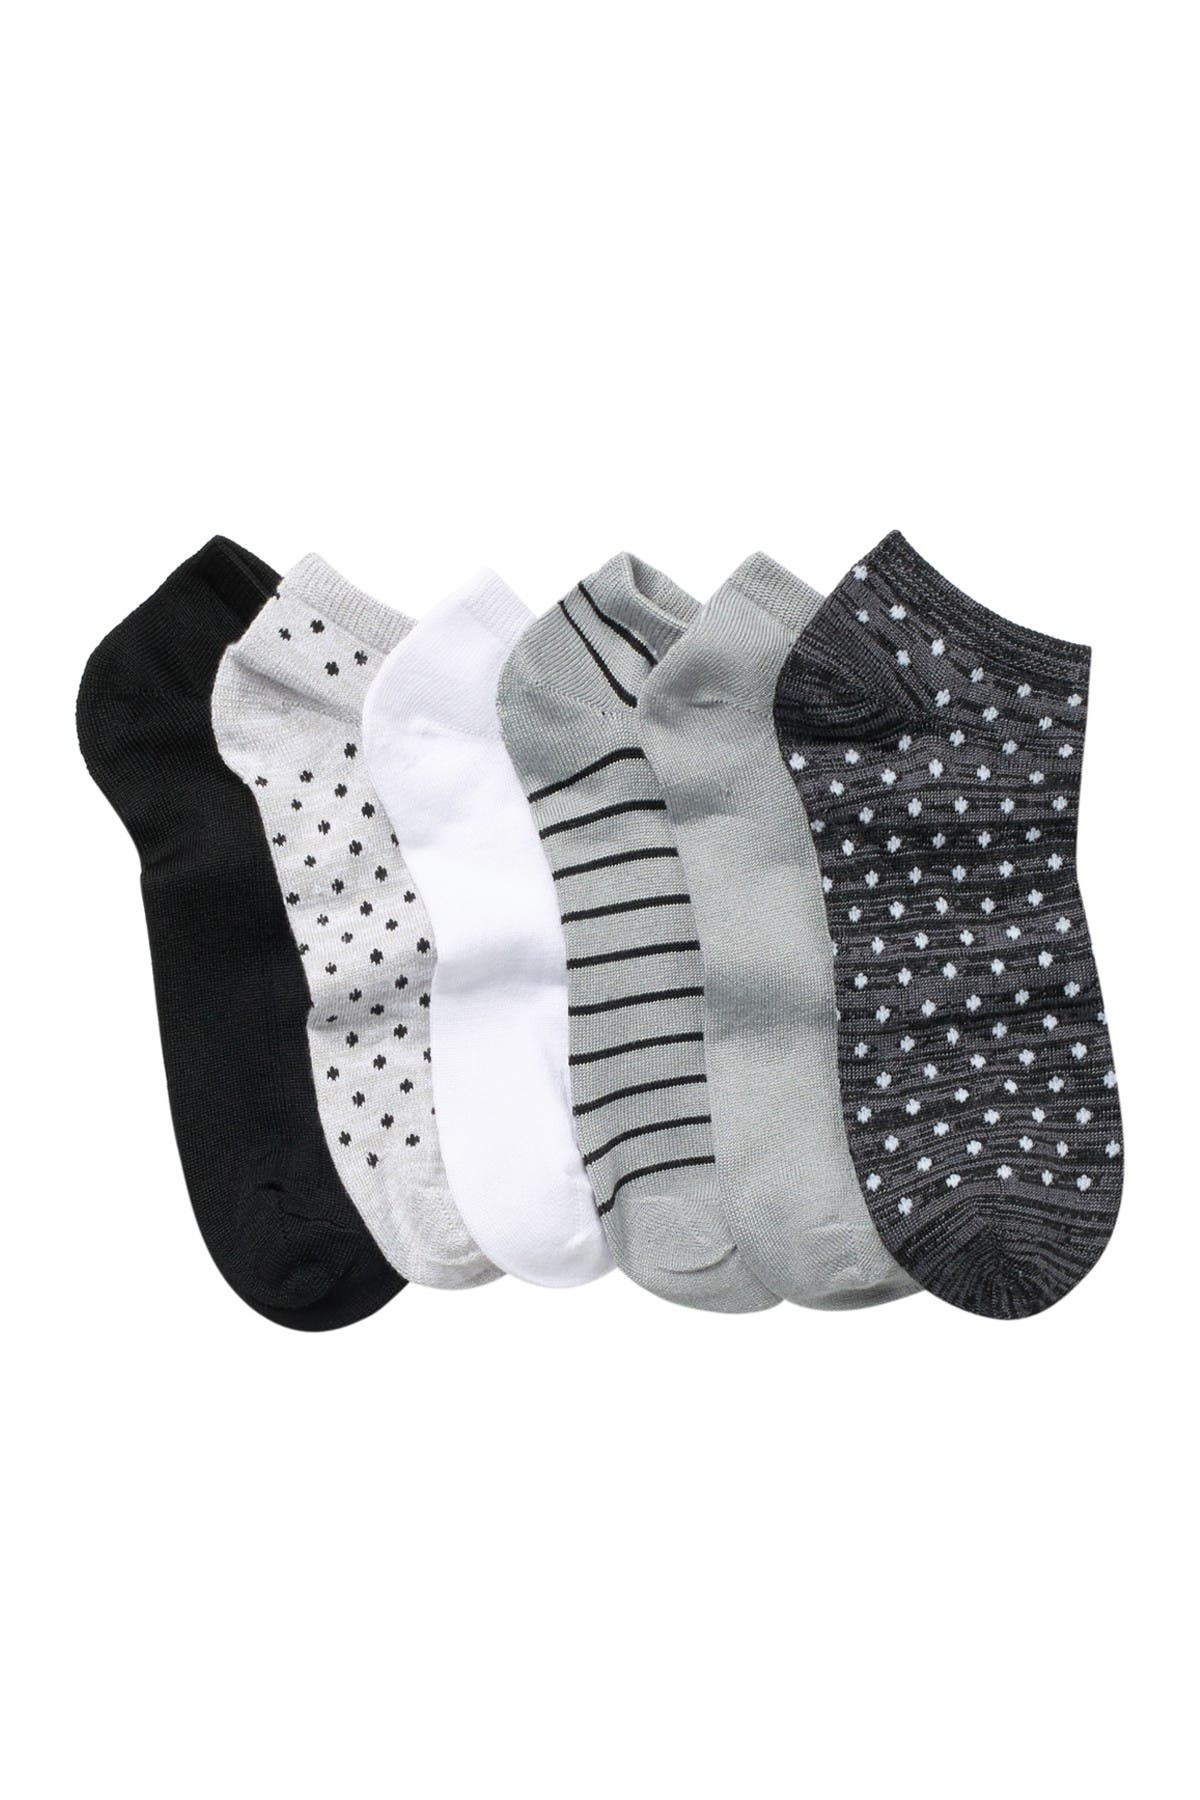 Image of Christian Siriano New York Low Ankle Socks - Pack of 6